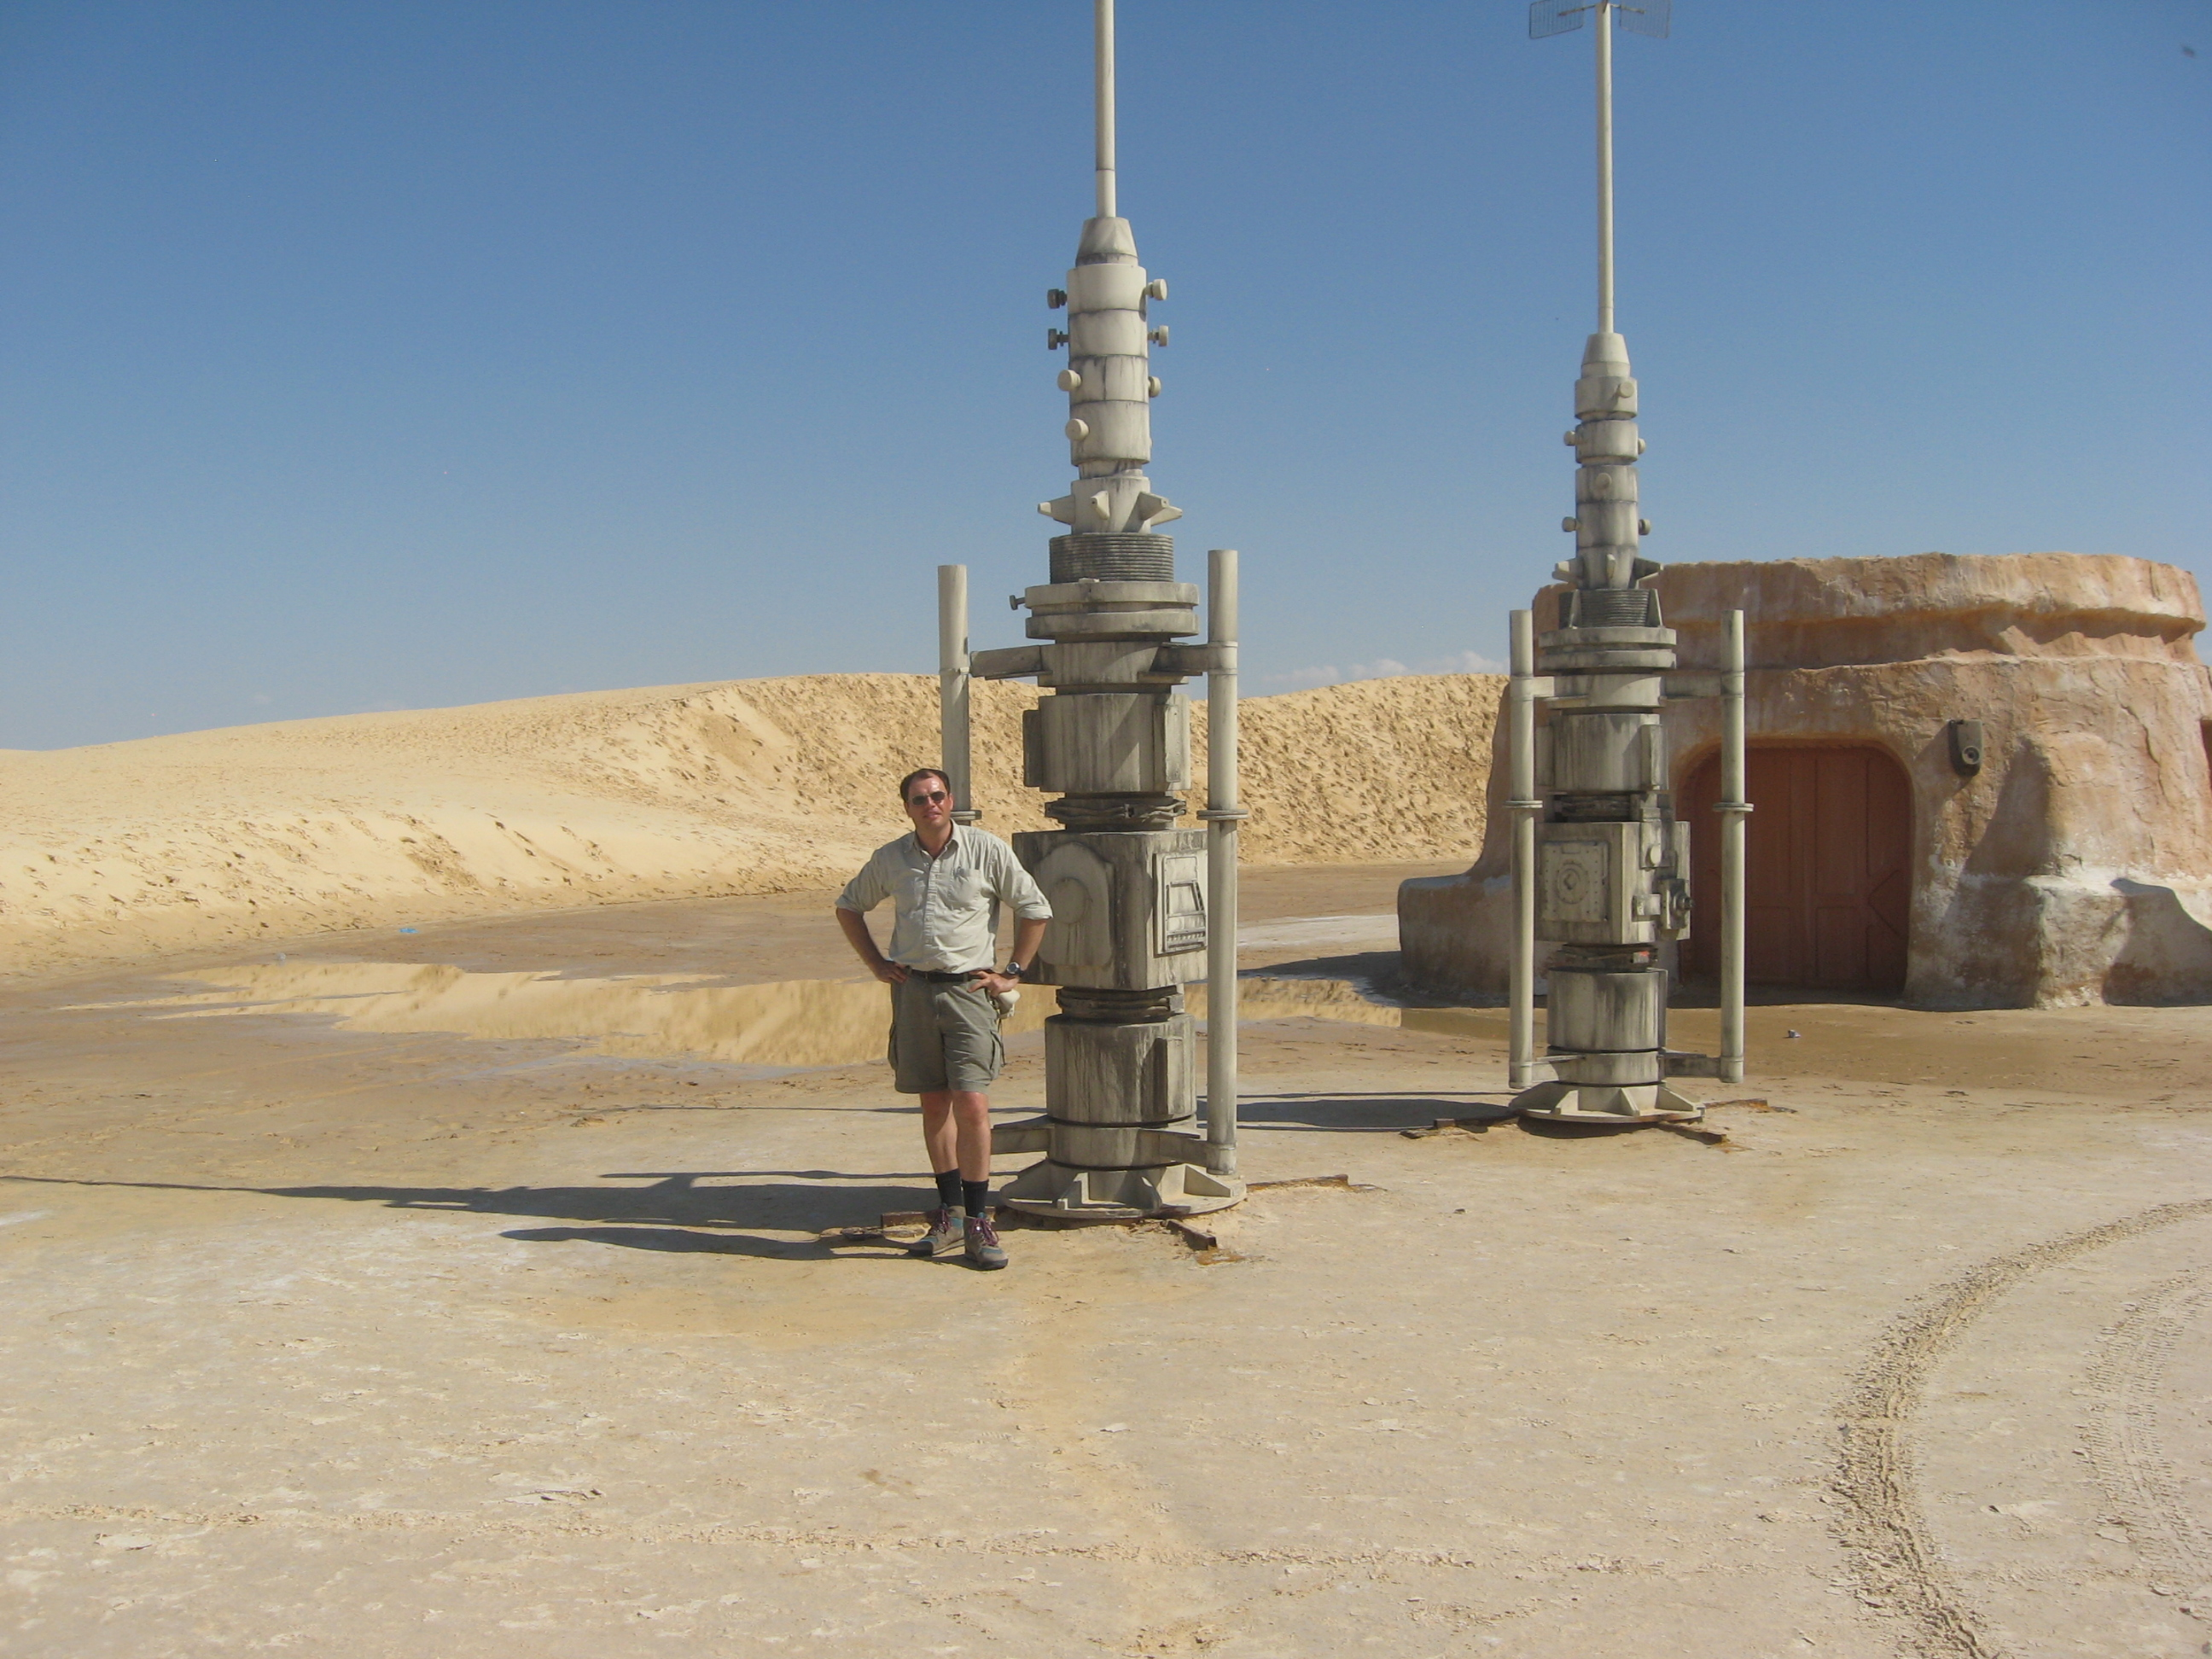 'Star Wars' Film Set Feels the Force of Fast-Moving Sand Dune